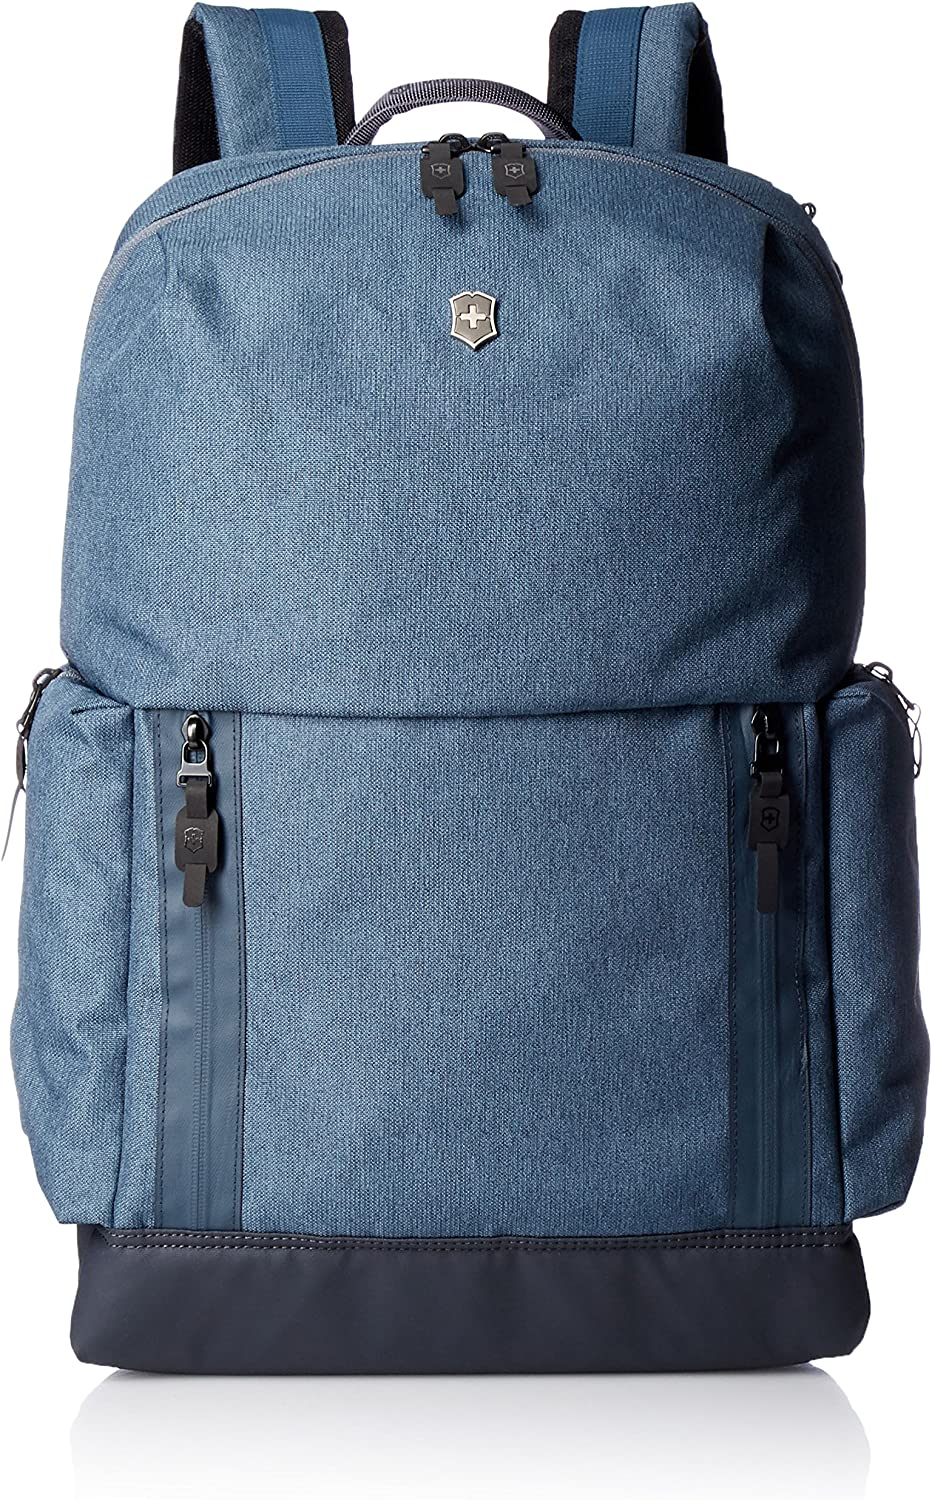 Victorinox Altmont Classic Deluxe Laptop Backpack with Bottle Opener, Blue, 18.9-inch